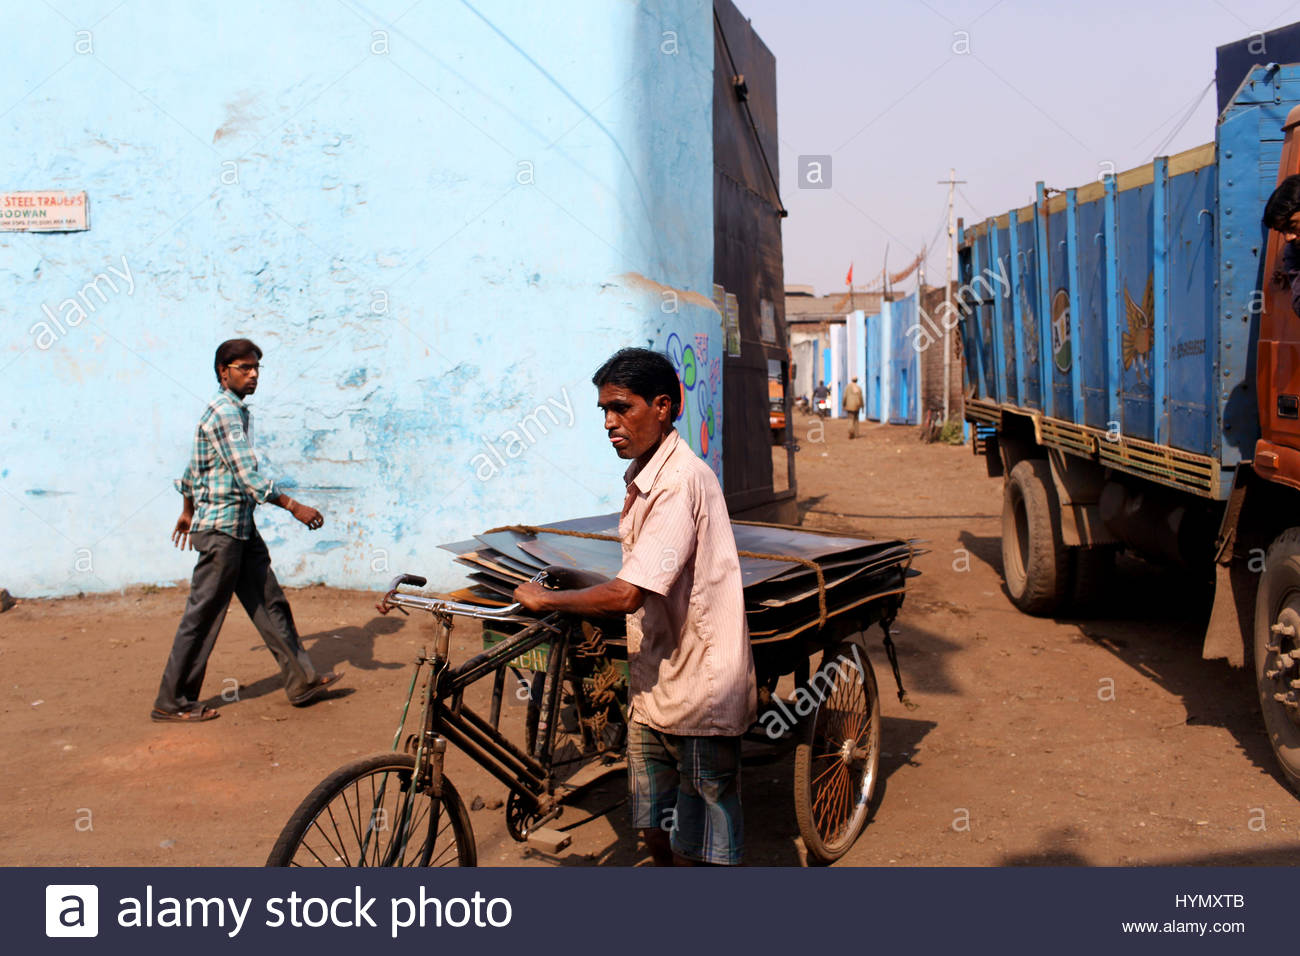 A man pushes a trickle carrying metal sheets in an industrial estate in Kolkata. - Stock Image